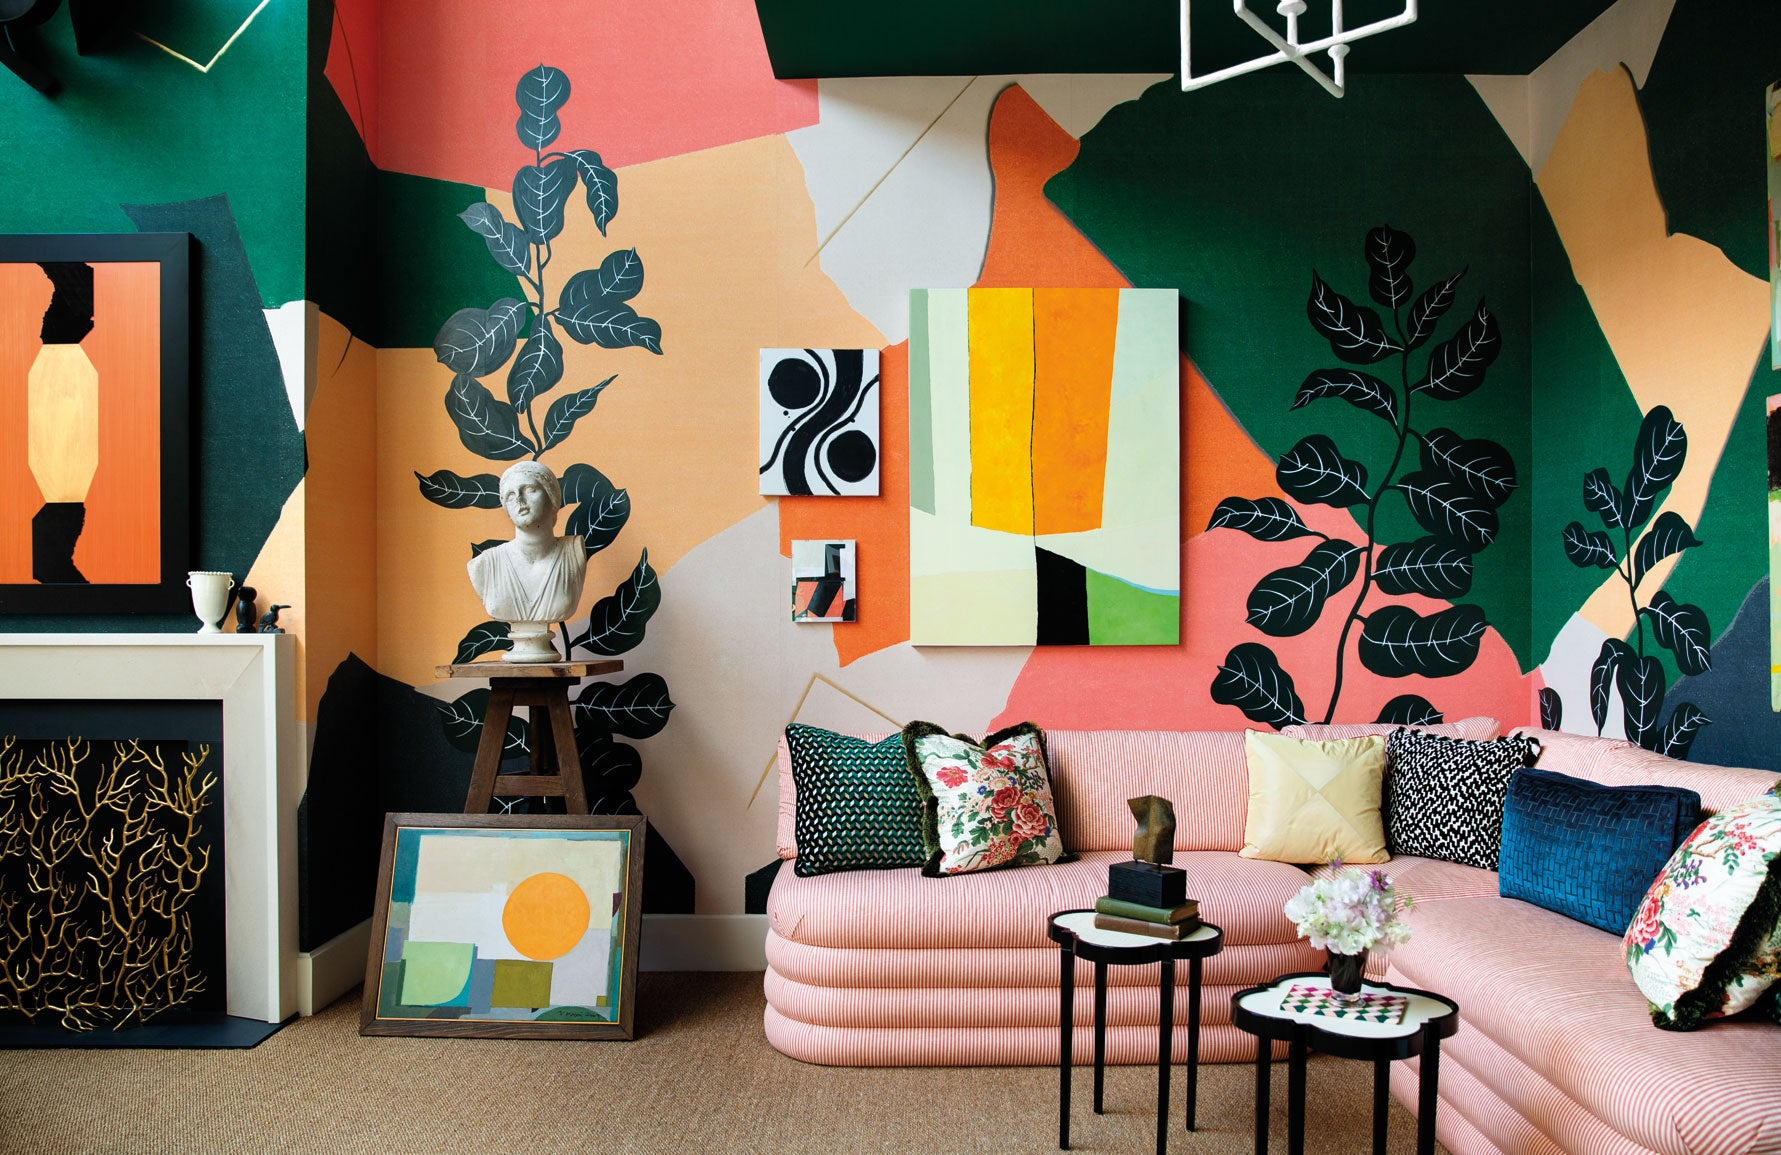 Designer Wall Mural | Colourful Living Room | Young Huh living room | The Luxurist | Read more at LuxDeco.com